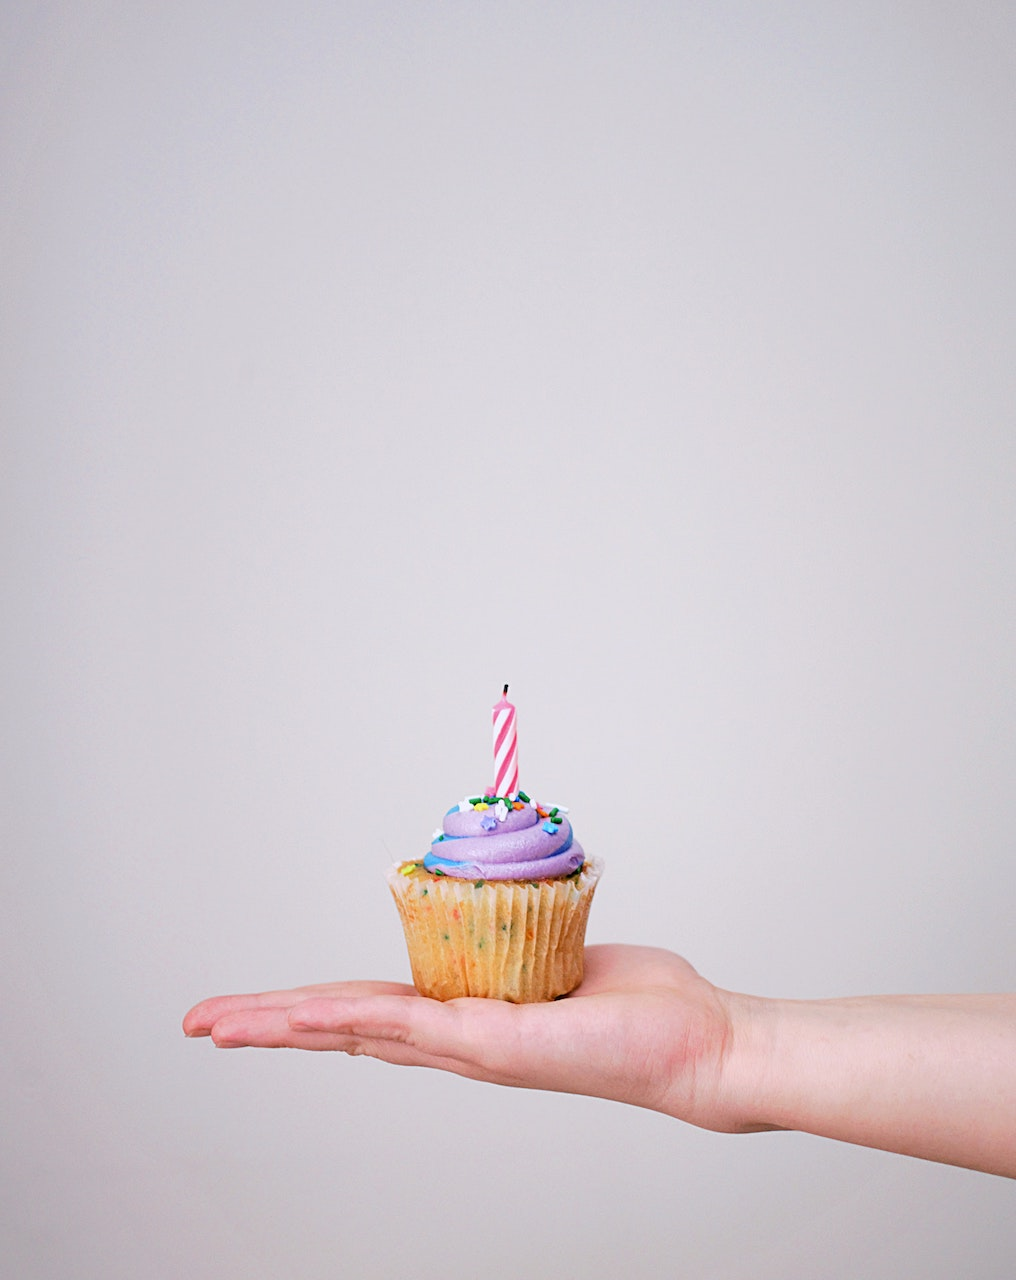 Are you documenting your birthday?